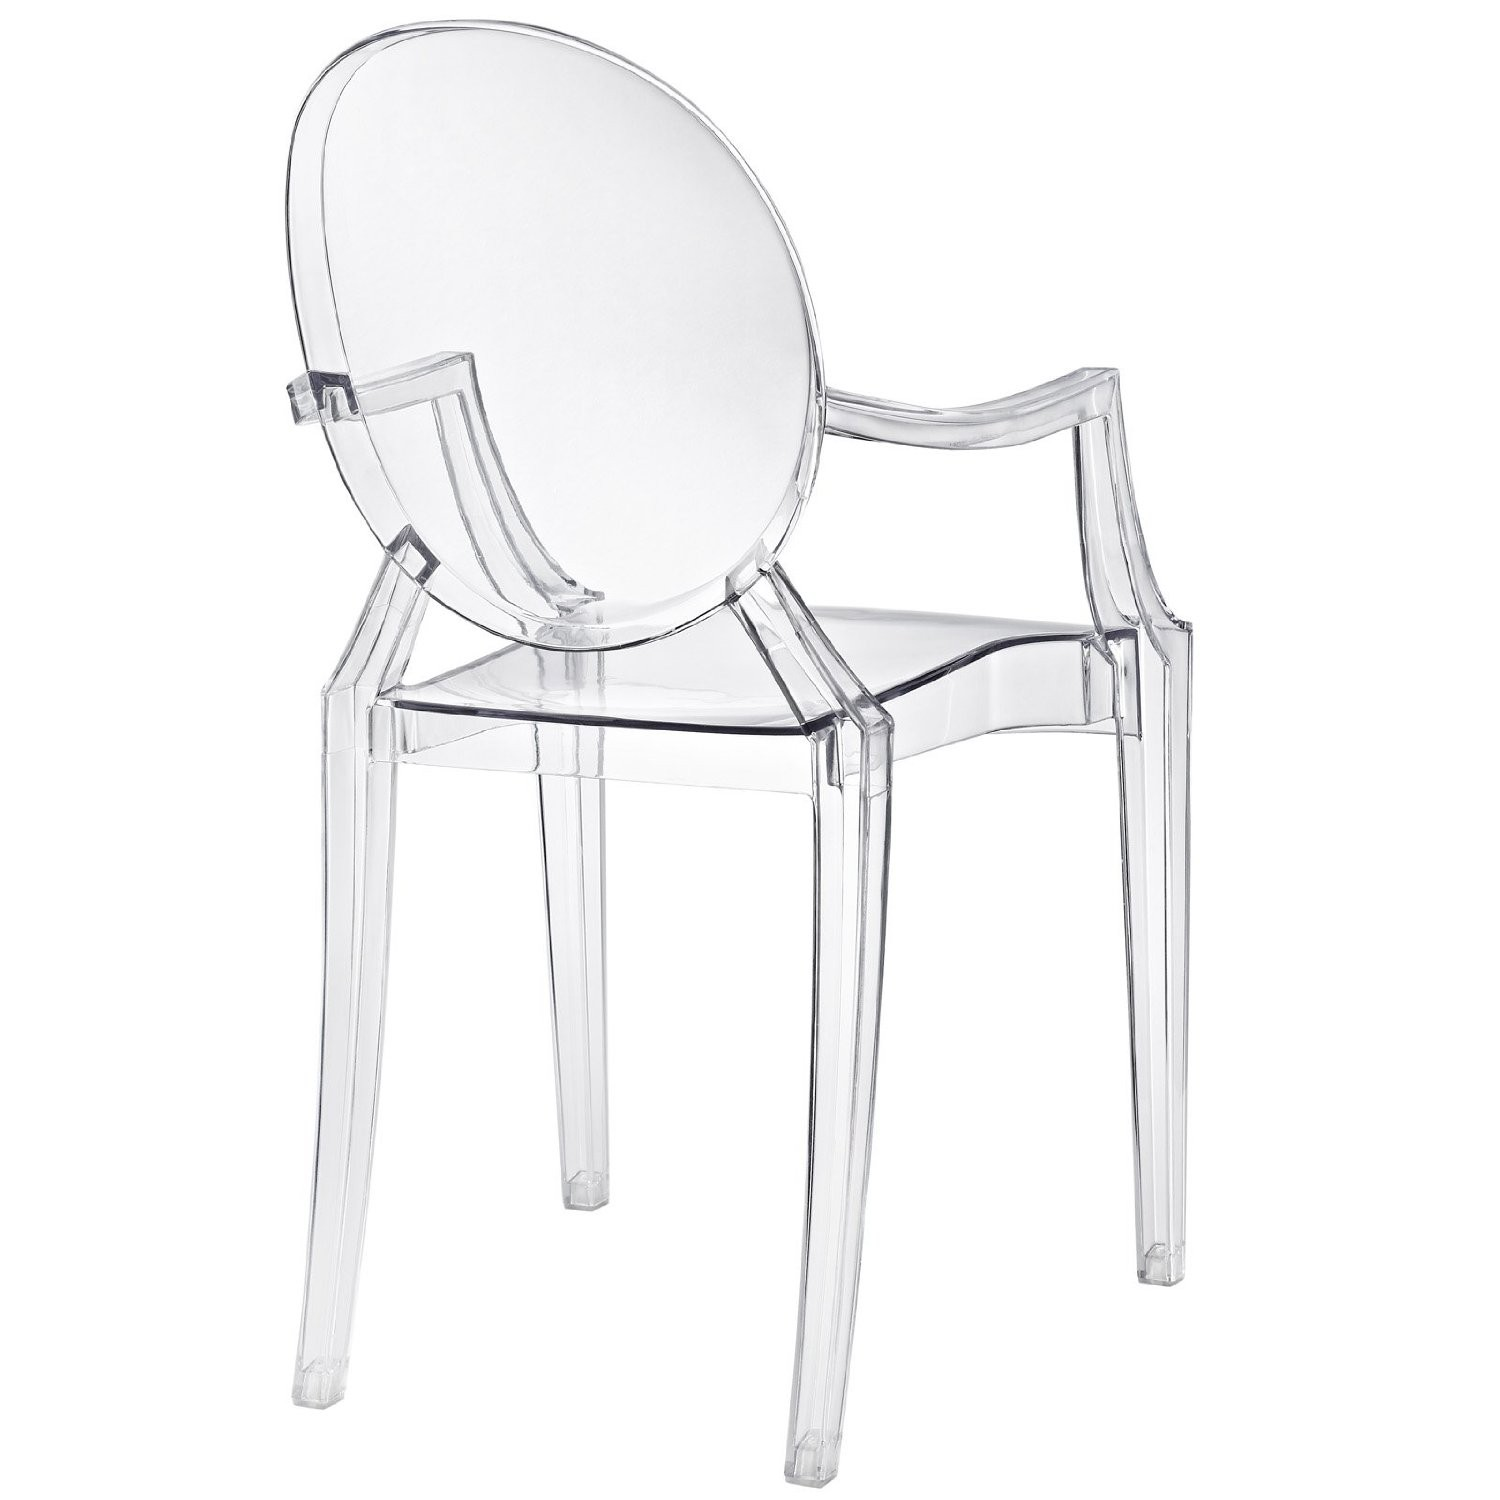 Incroyable Designer Replica Louis Ghost Arm Chair Clear. Regular Price: S$229.00